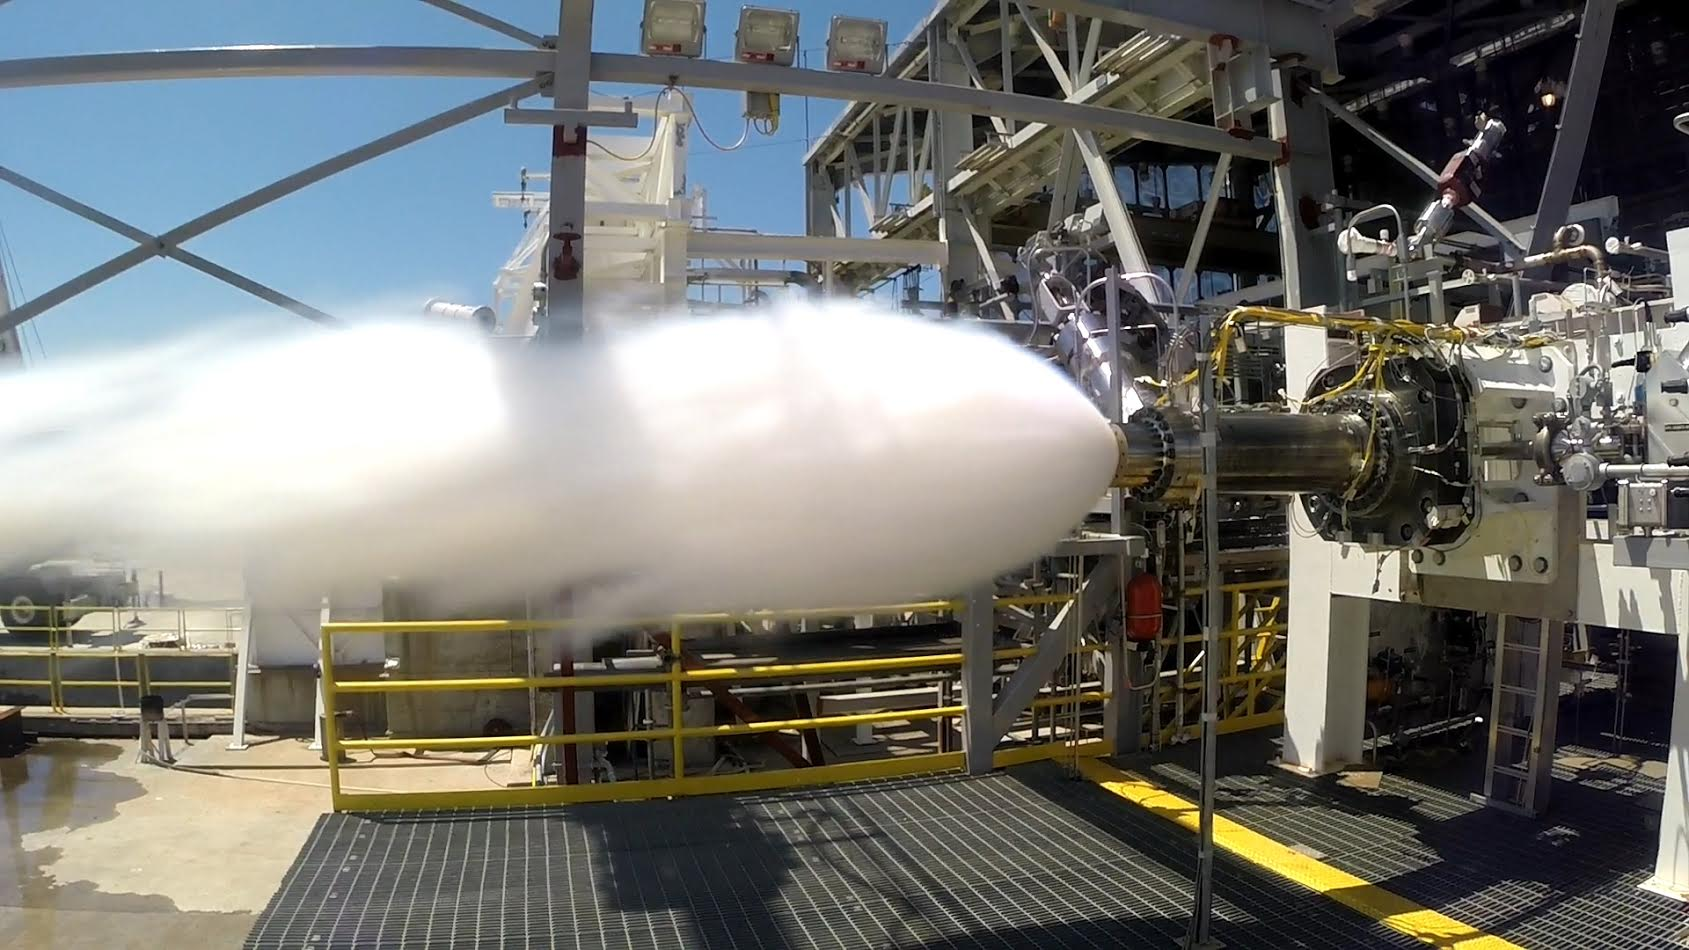 Aerojet Rocketdyne tests a full-scale preburner for the AR1 engine. Photo Credit: Aerojet Rocketdyne